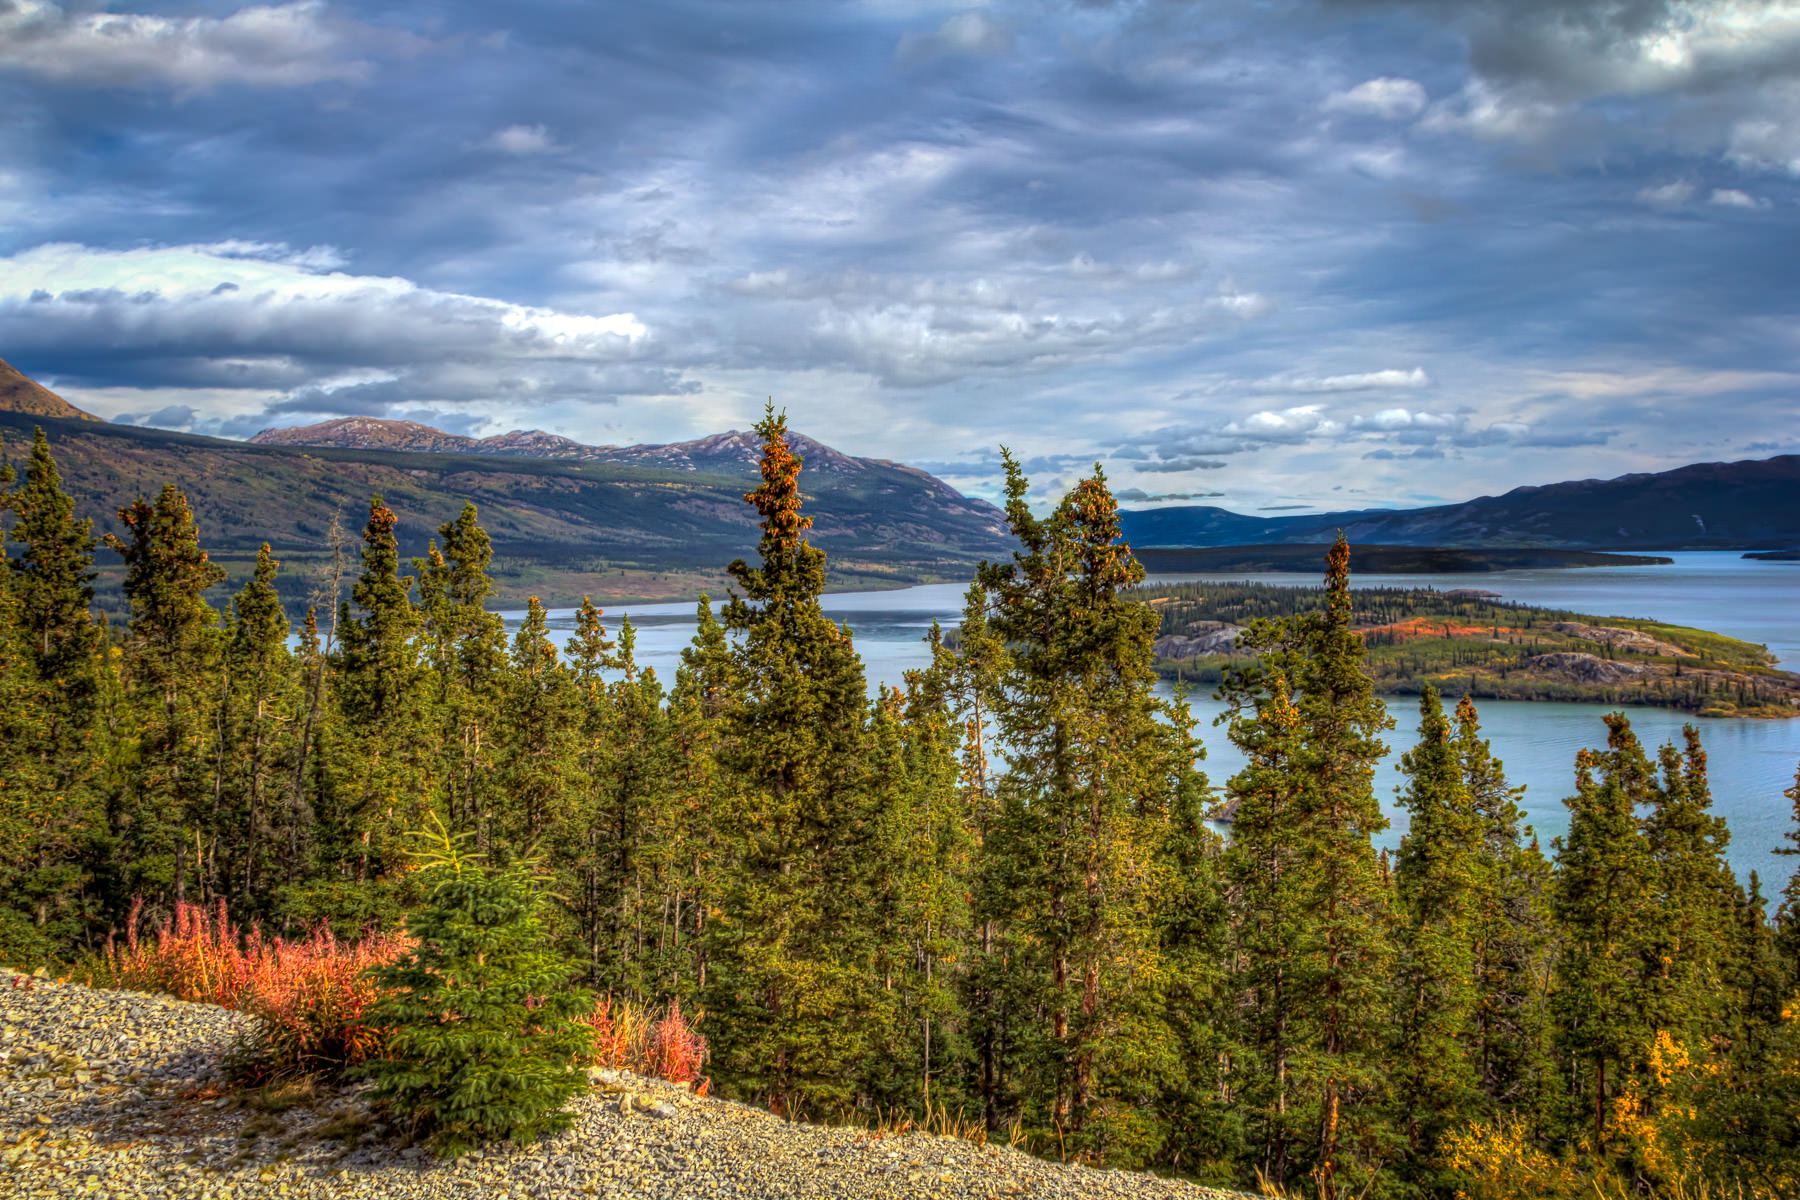 Pine trees survey the Yukon Territory's Tagish Lake and Bove Island.